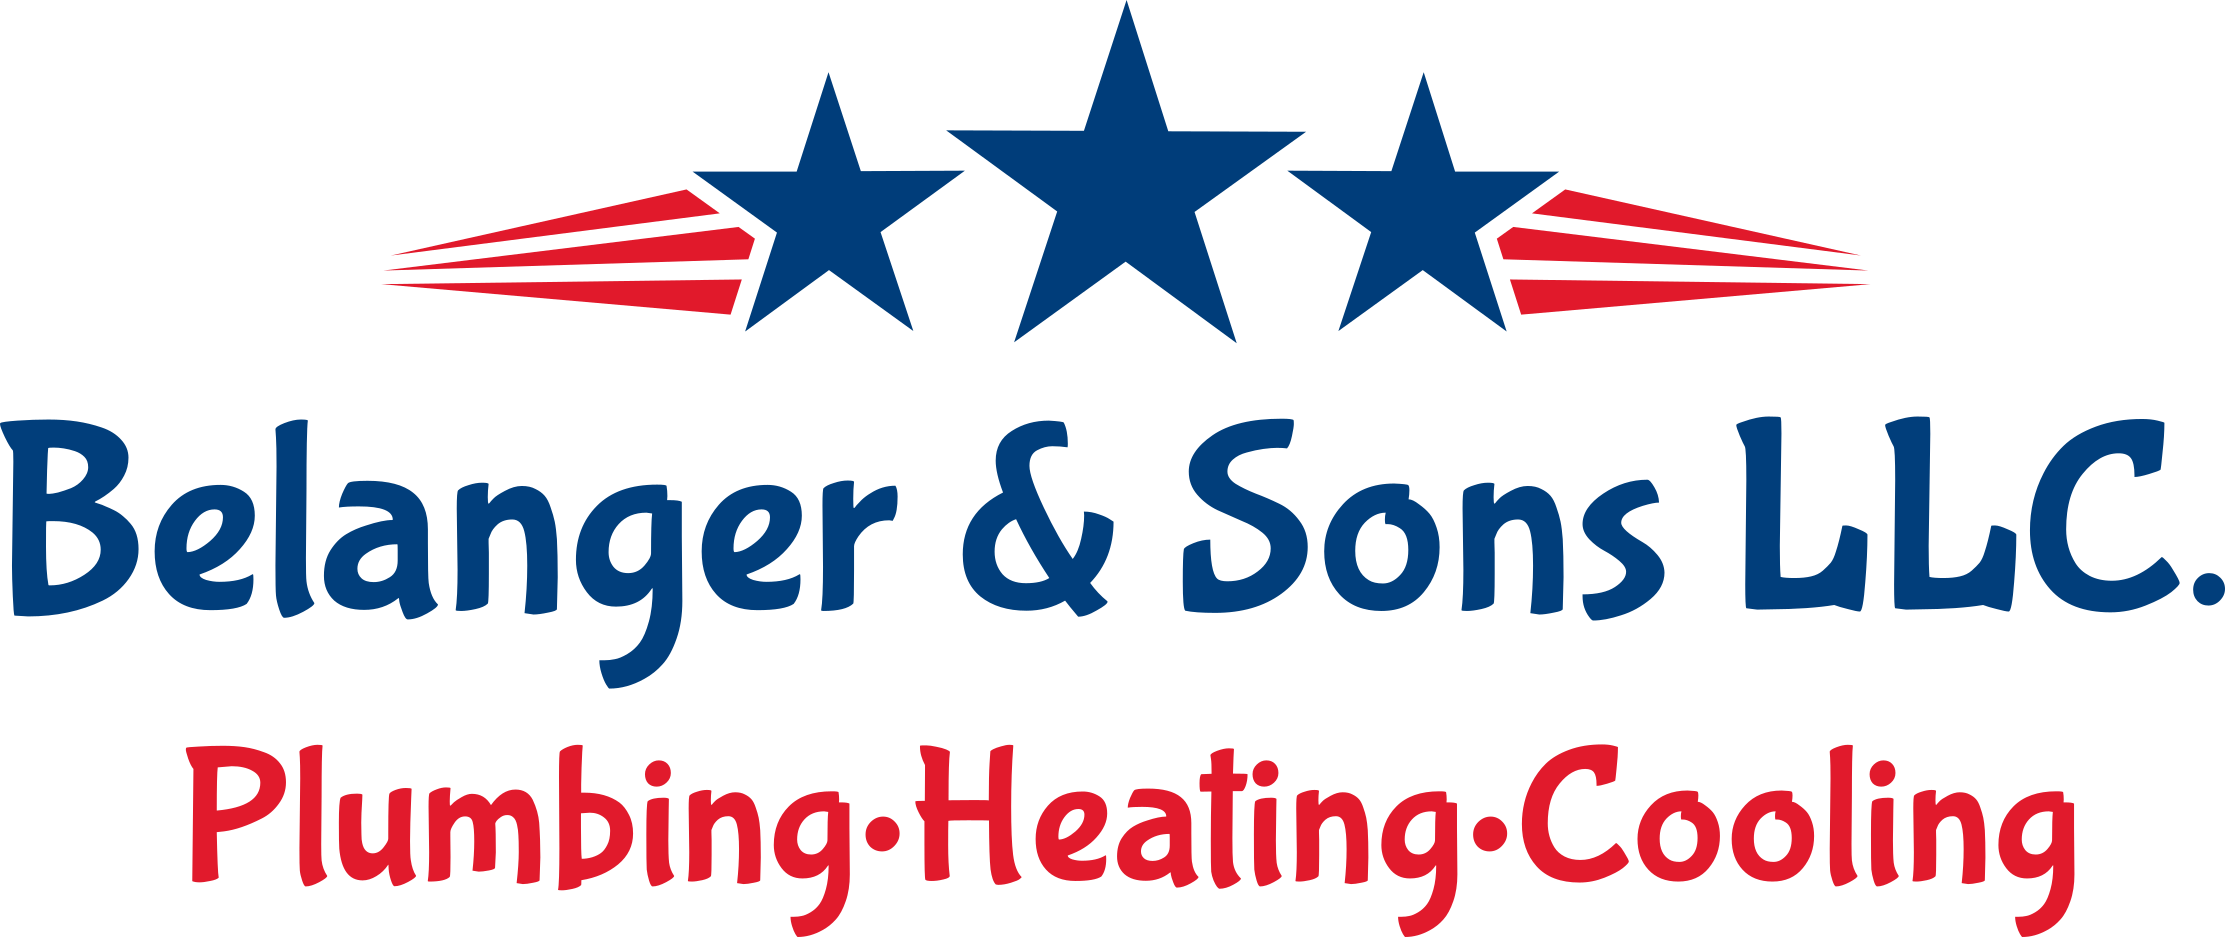 Belanger & Sons LLC primary image